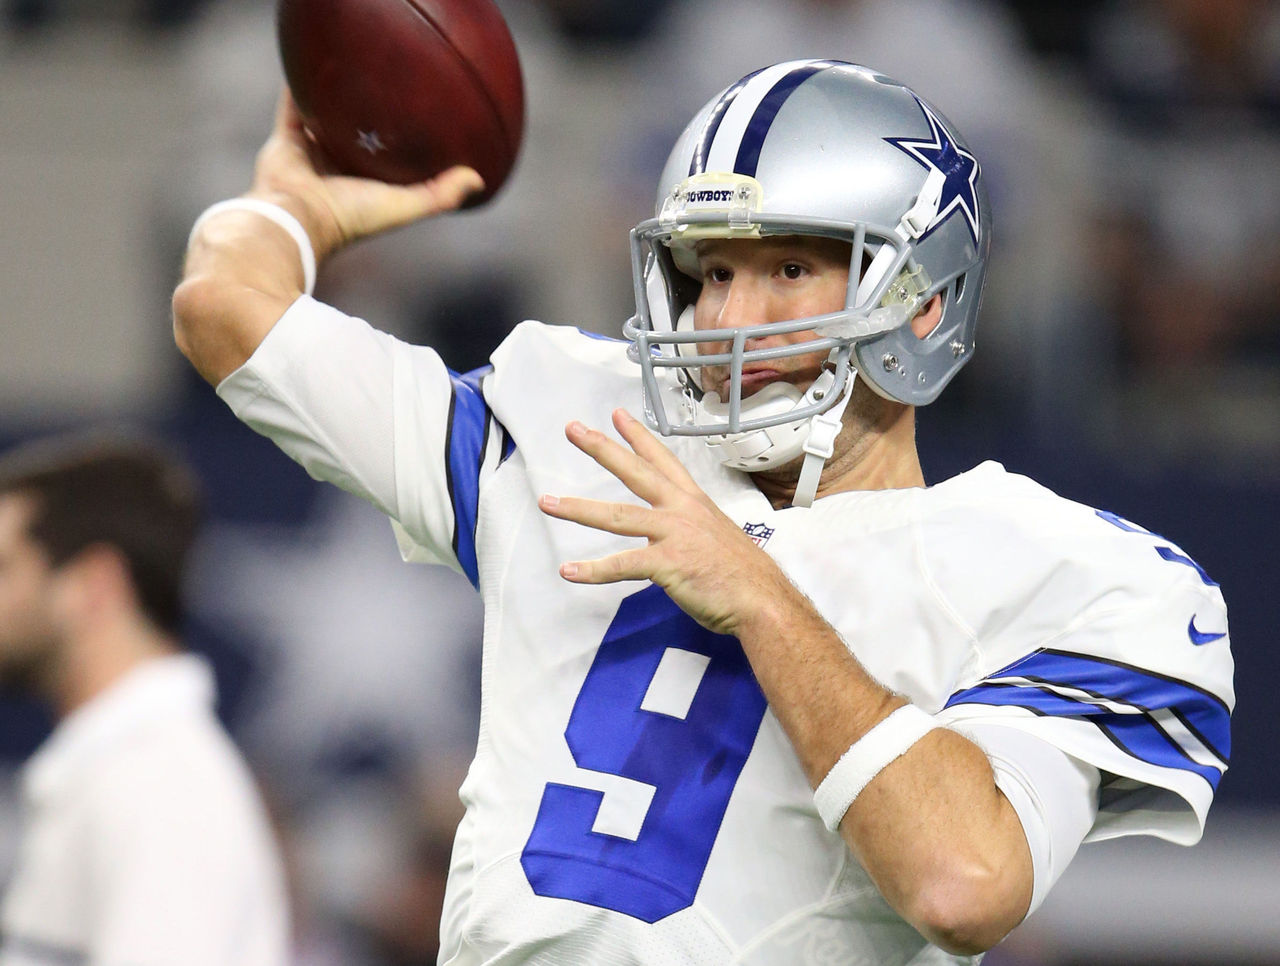 Cropped_2017-01-15t211526z_2099518482_nocid_rtrmadp_3_nfl-nfc-divisional-green-bay-packers-at-dallas-cowboys